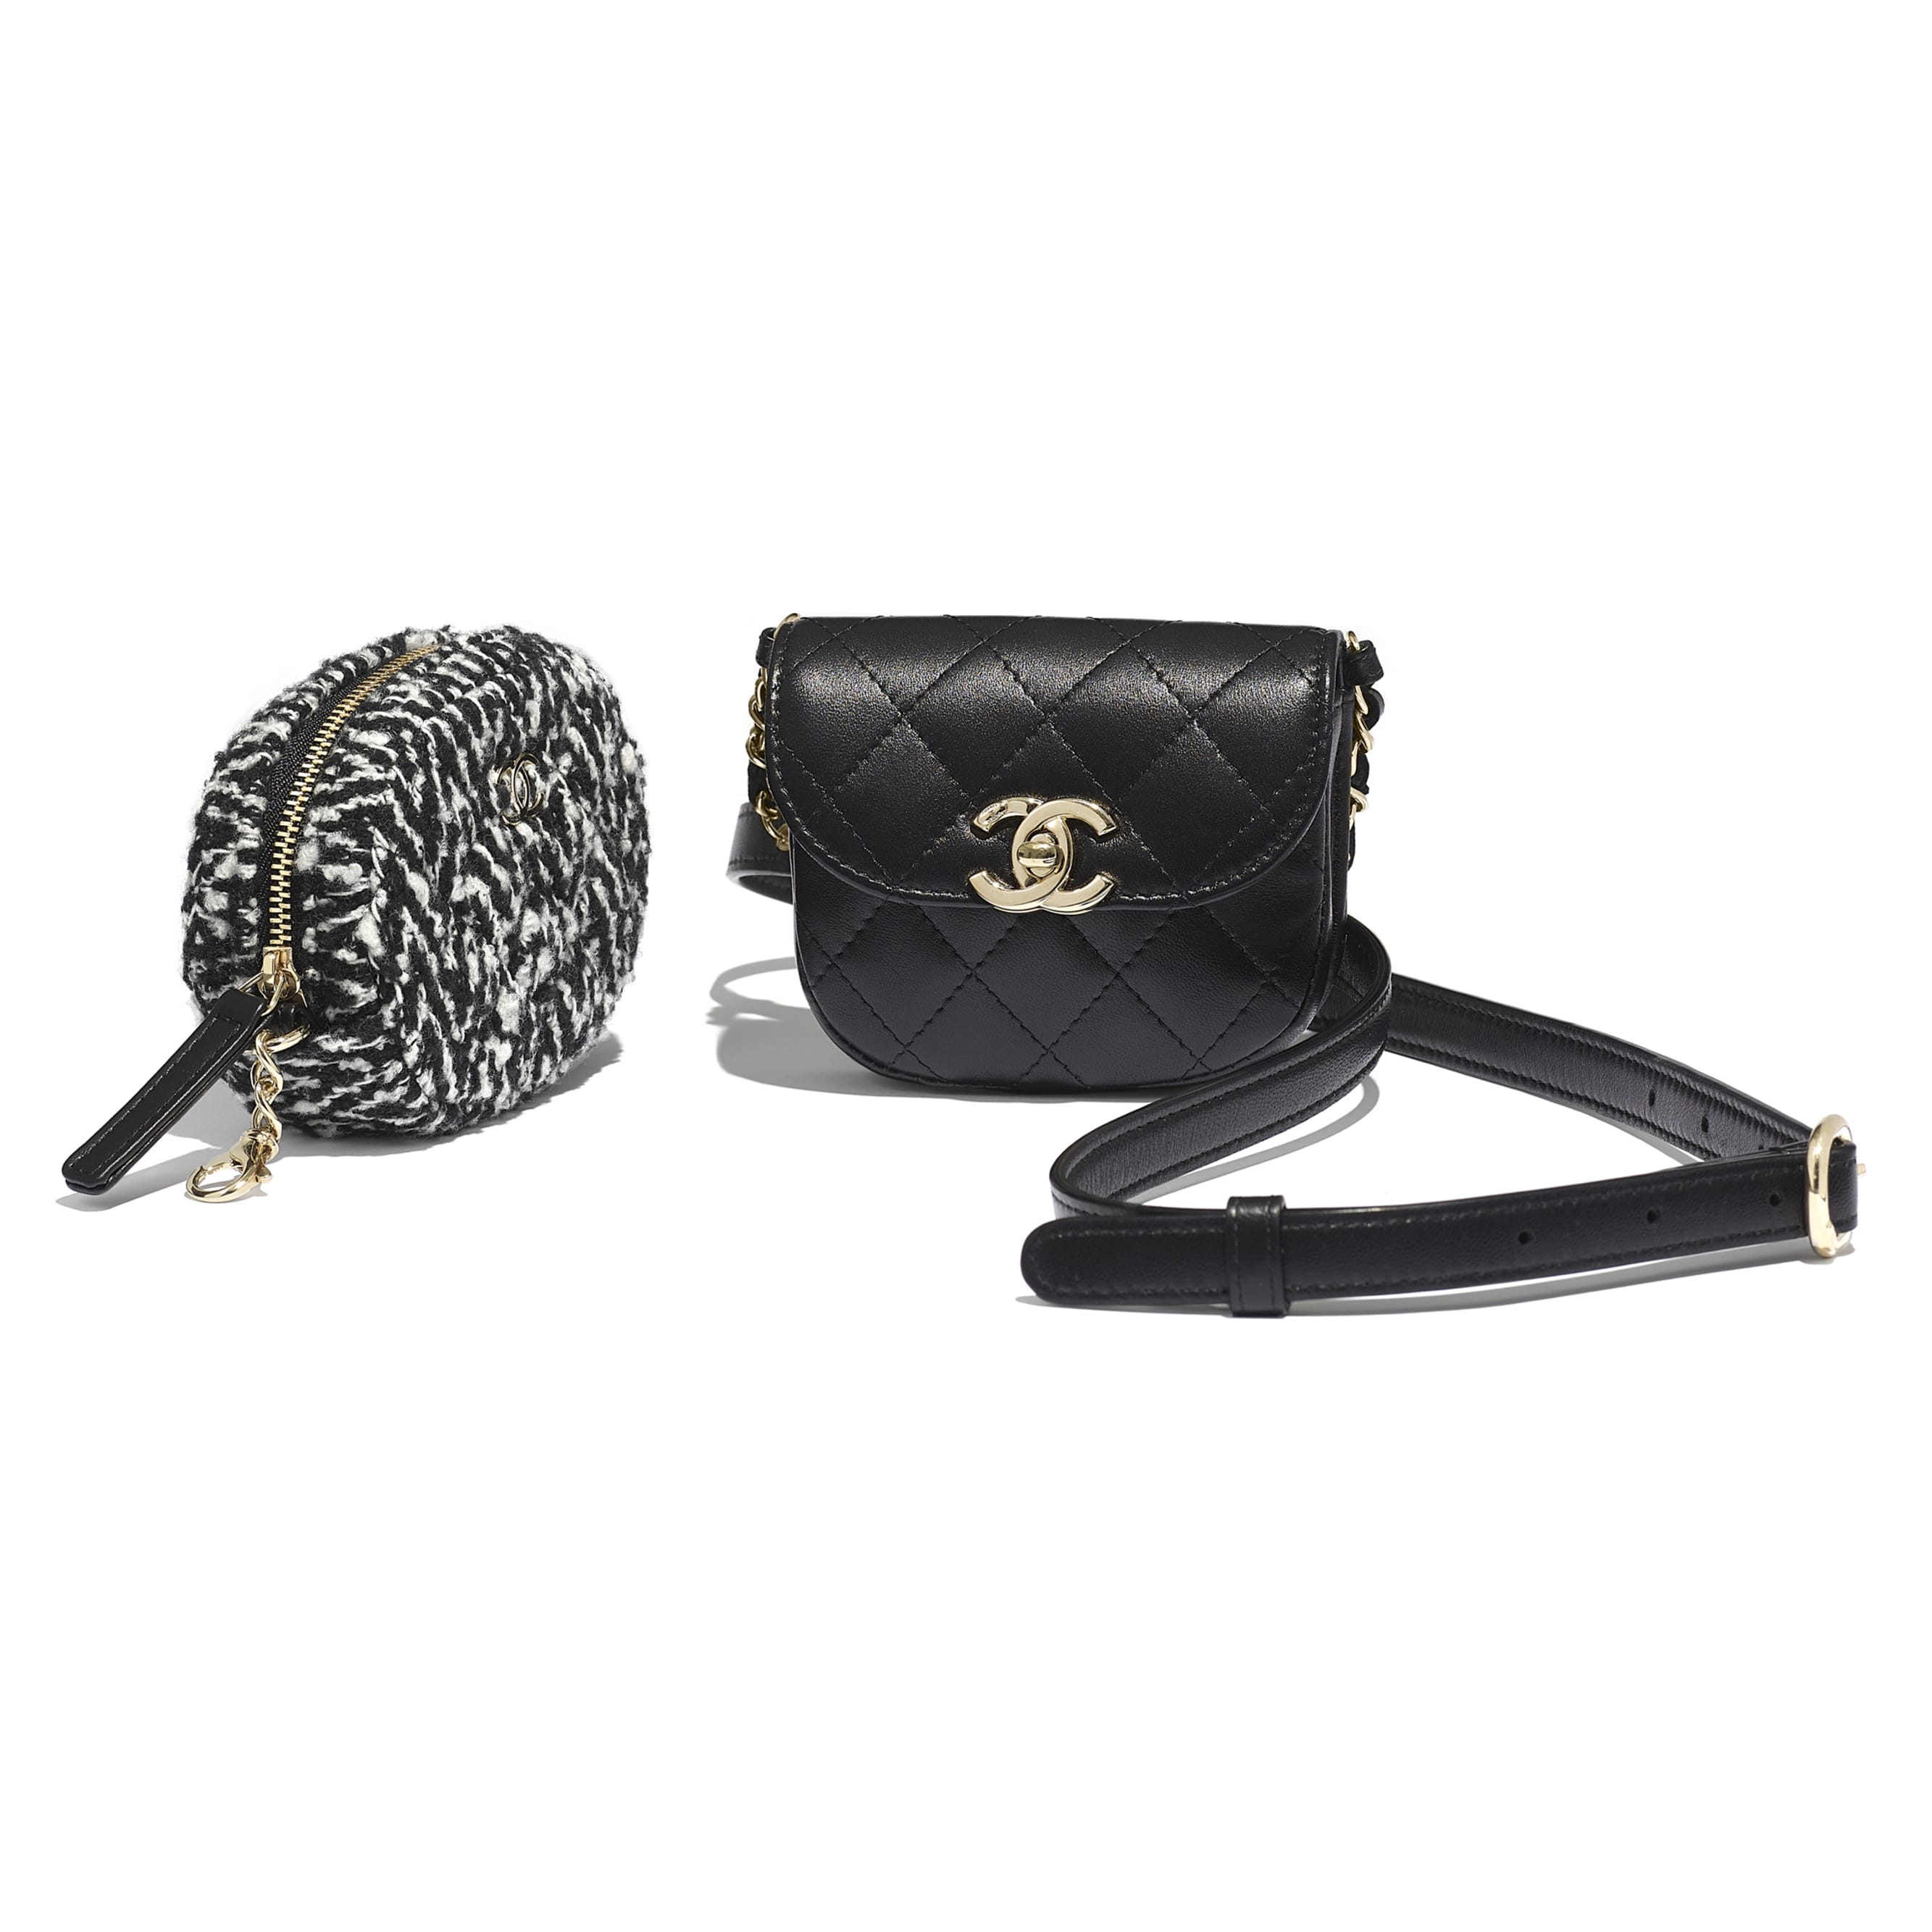 Waist Bag & Coin Purse - Black & White - Lambskin, Tweed & Gold-Tone Metal - Extra view - see standard sized version